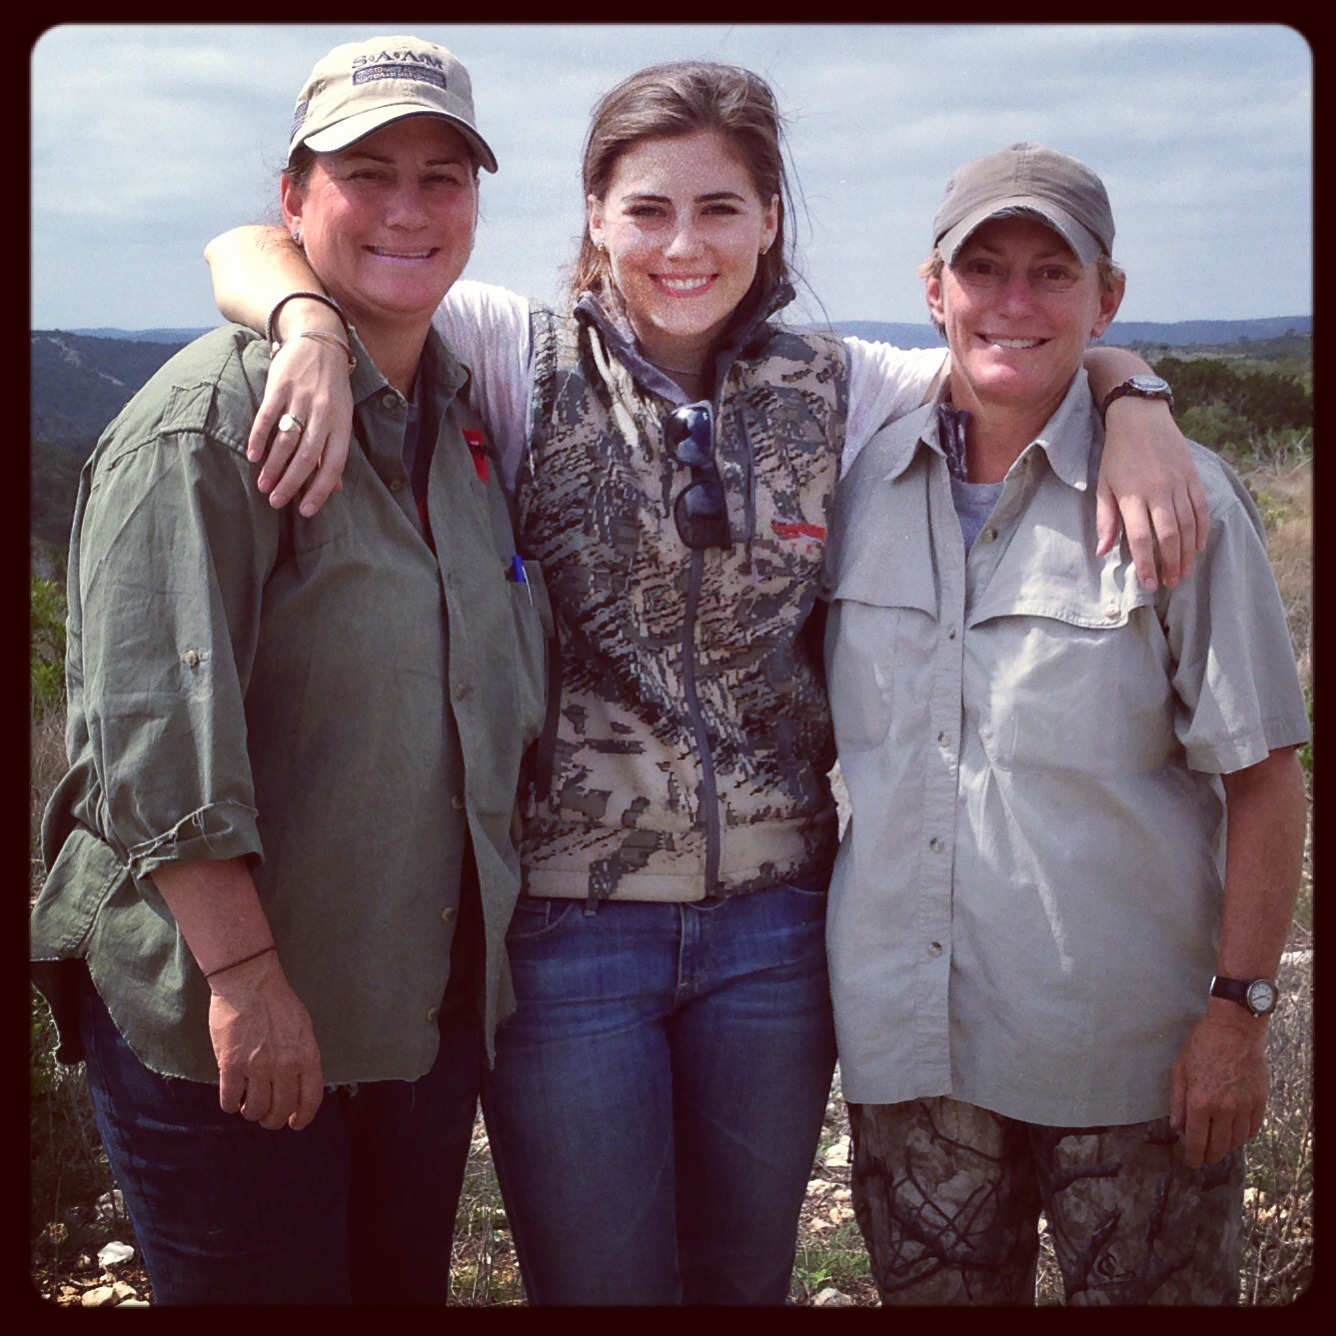 TBT to SAAM shooting school with my Mom and aunt a few years ago.